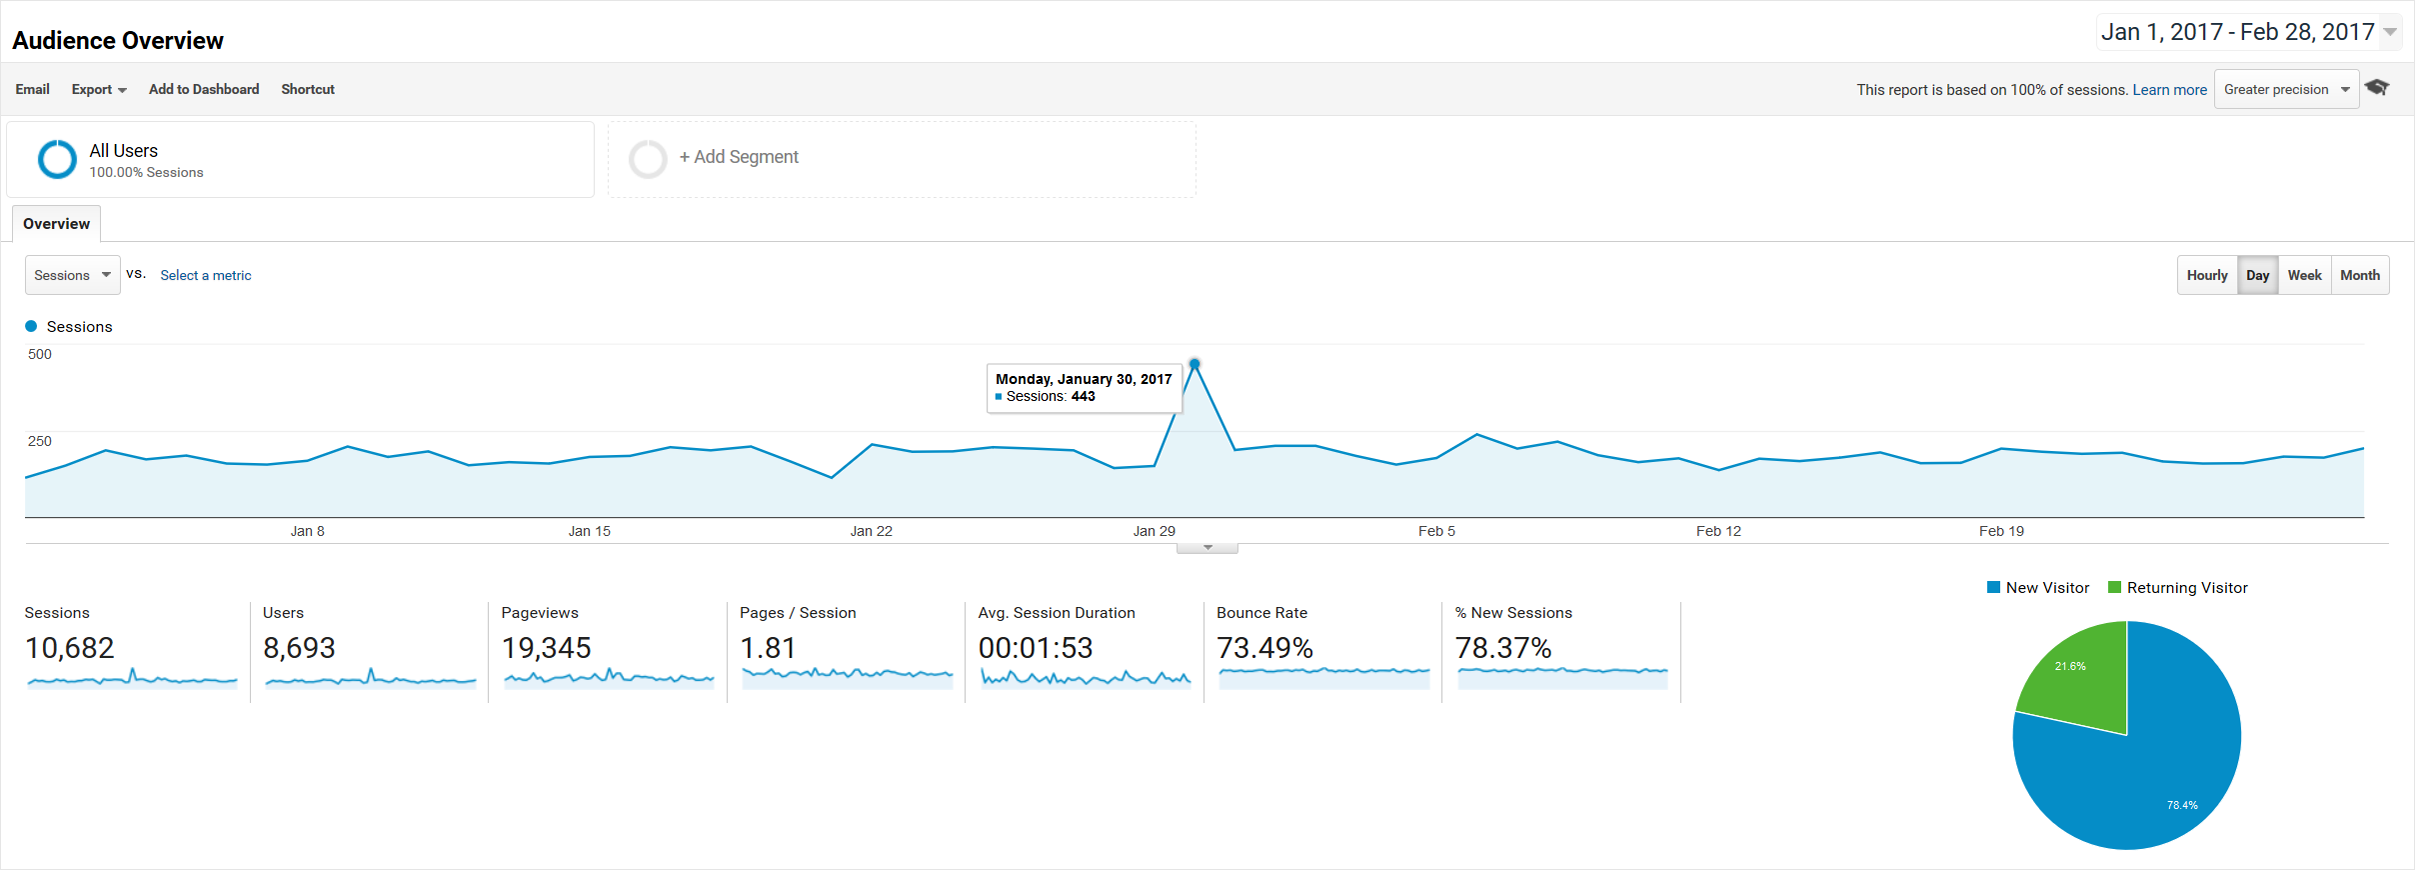 Google Analytics - Audience Overview - 2017-01-01 through 2017-02-28